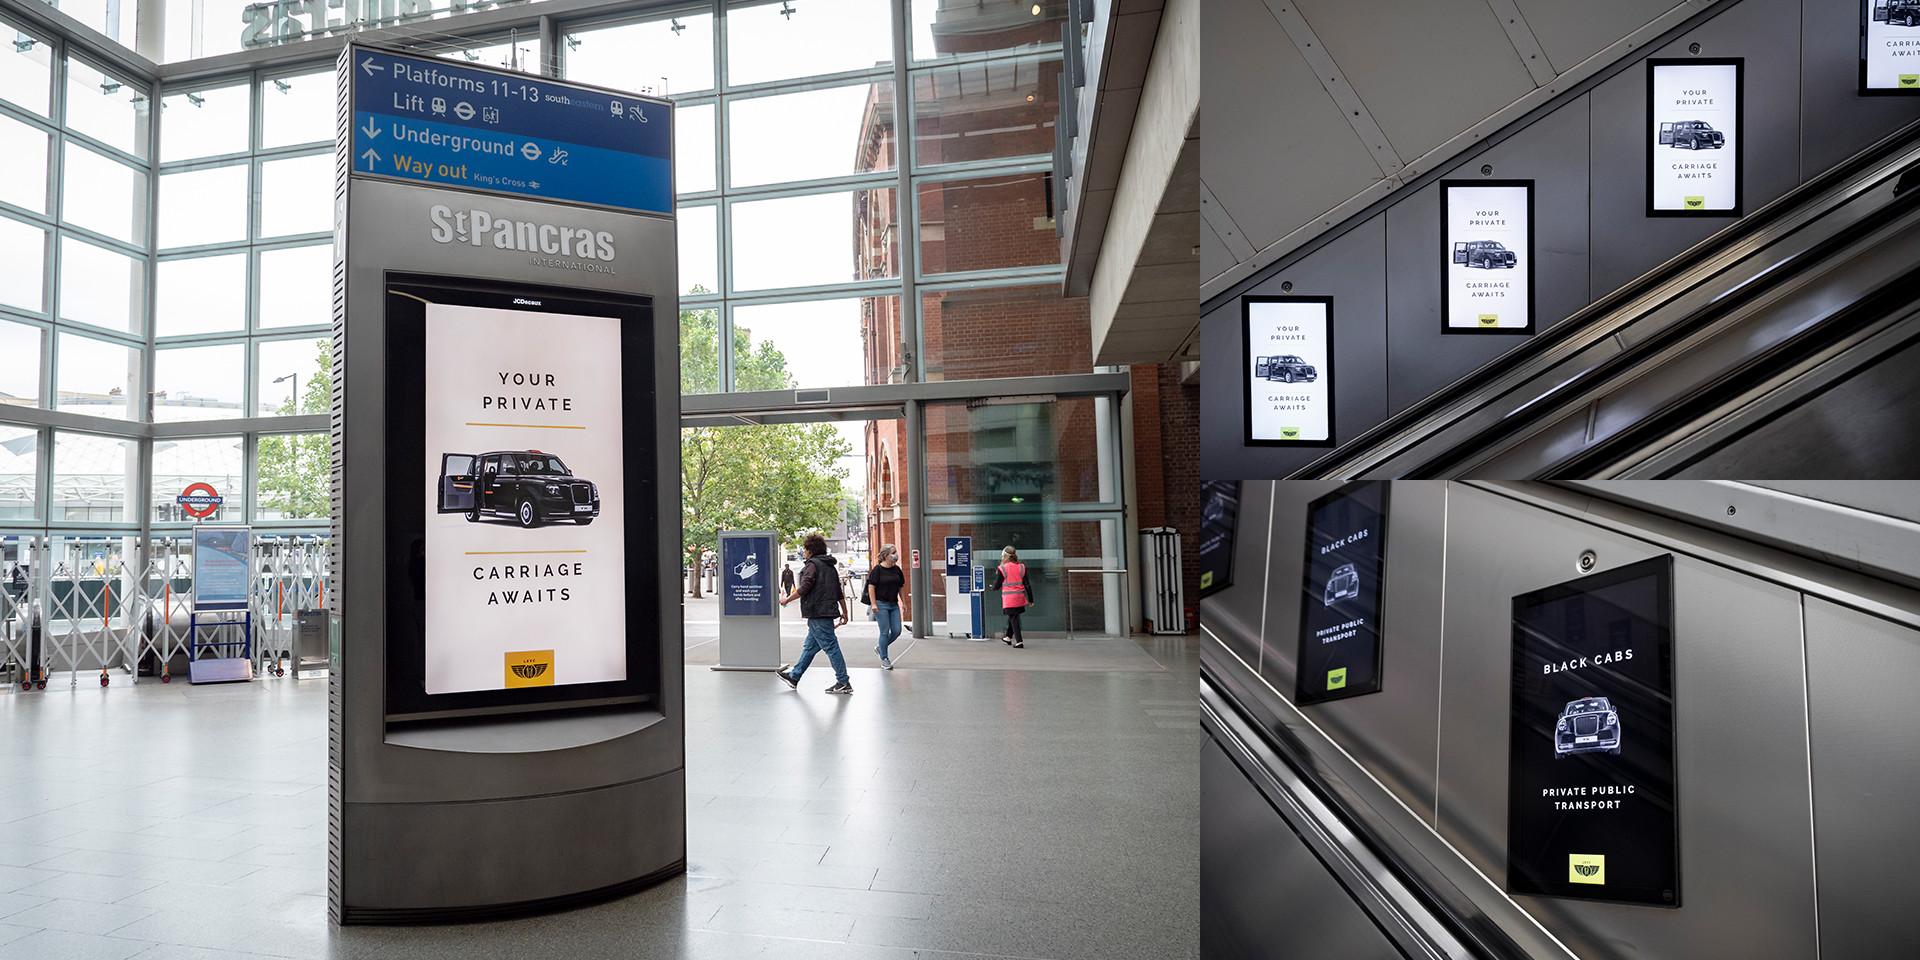 LEVC ads in St Pancras station and tube escalators in London